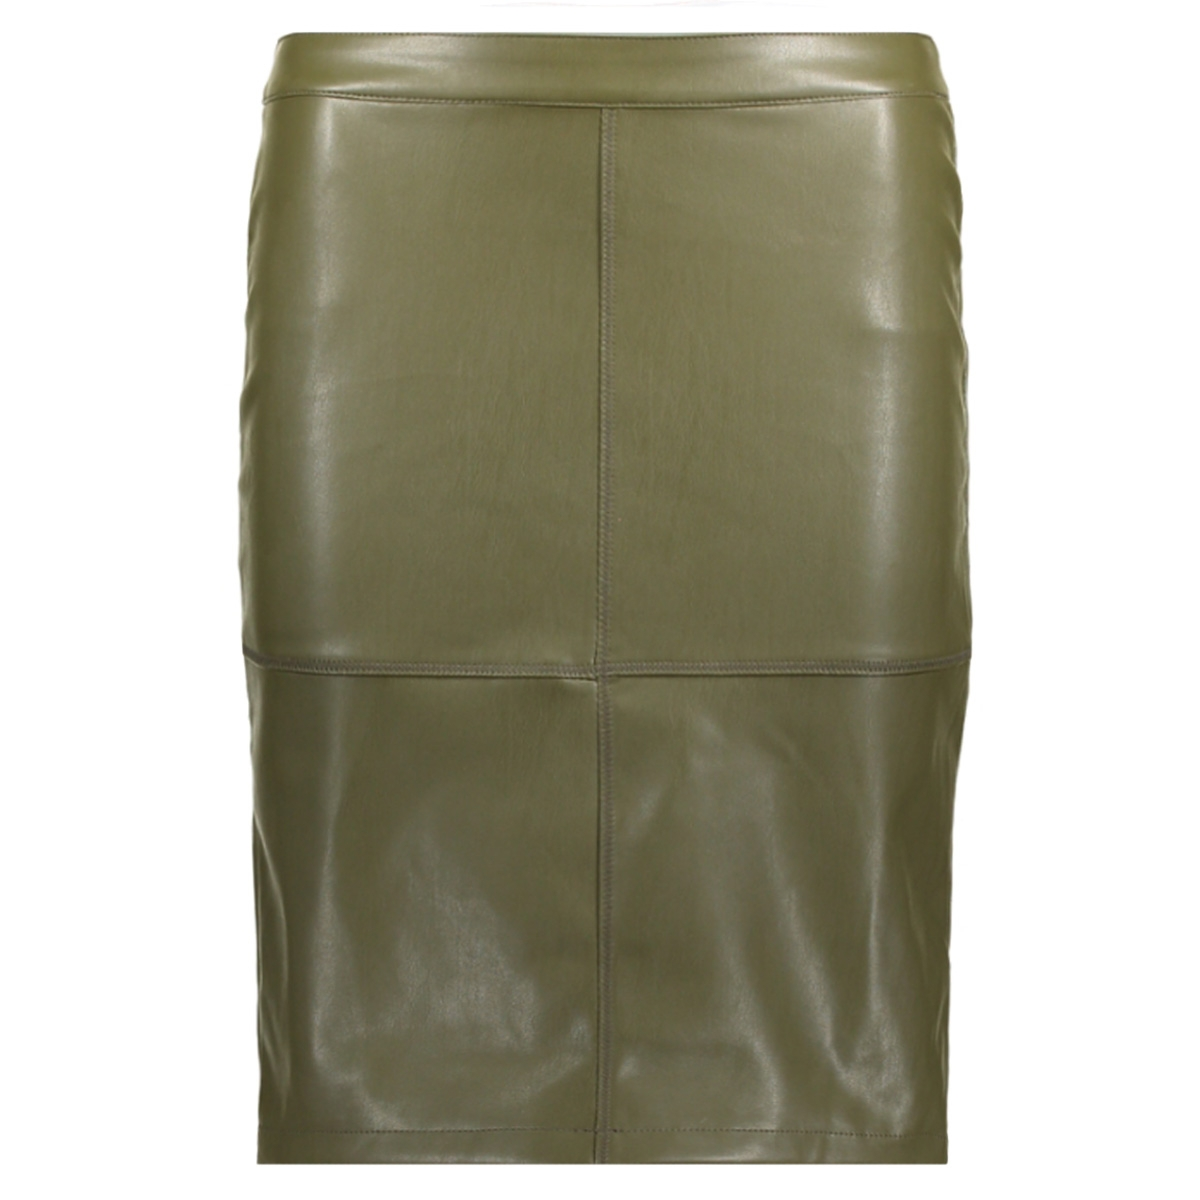 vipen new skirt-noos 14033417 vila rok ivy green